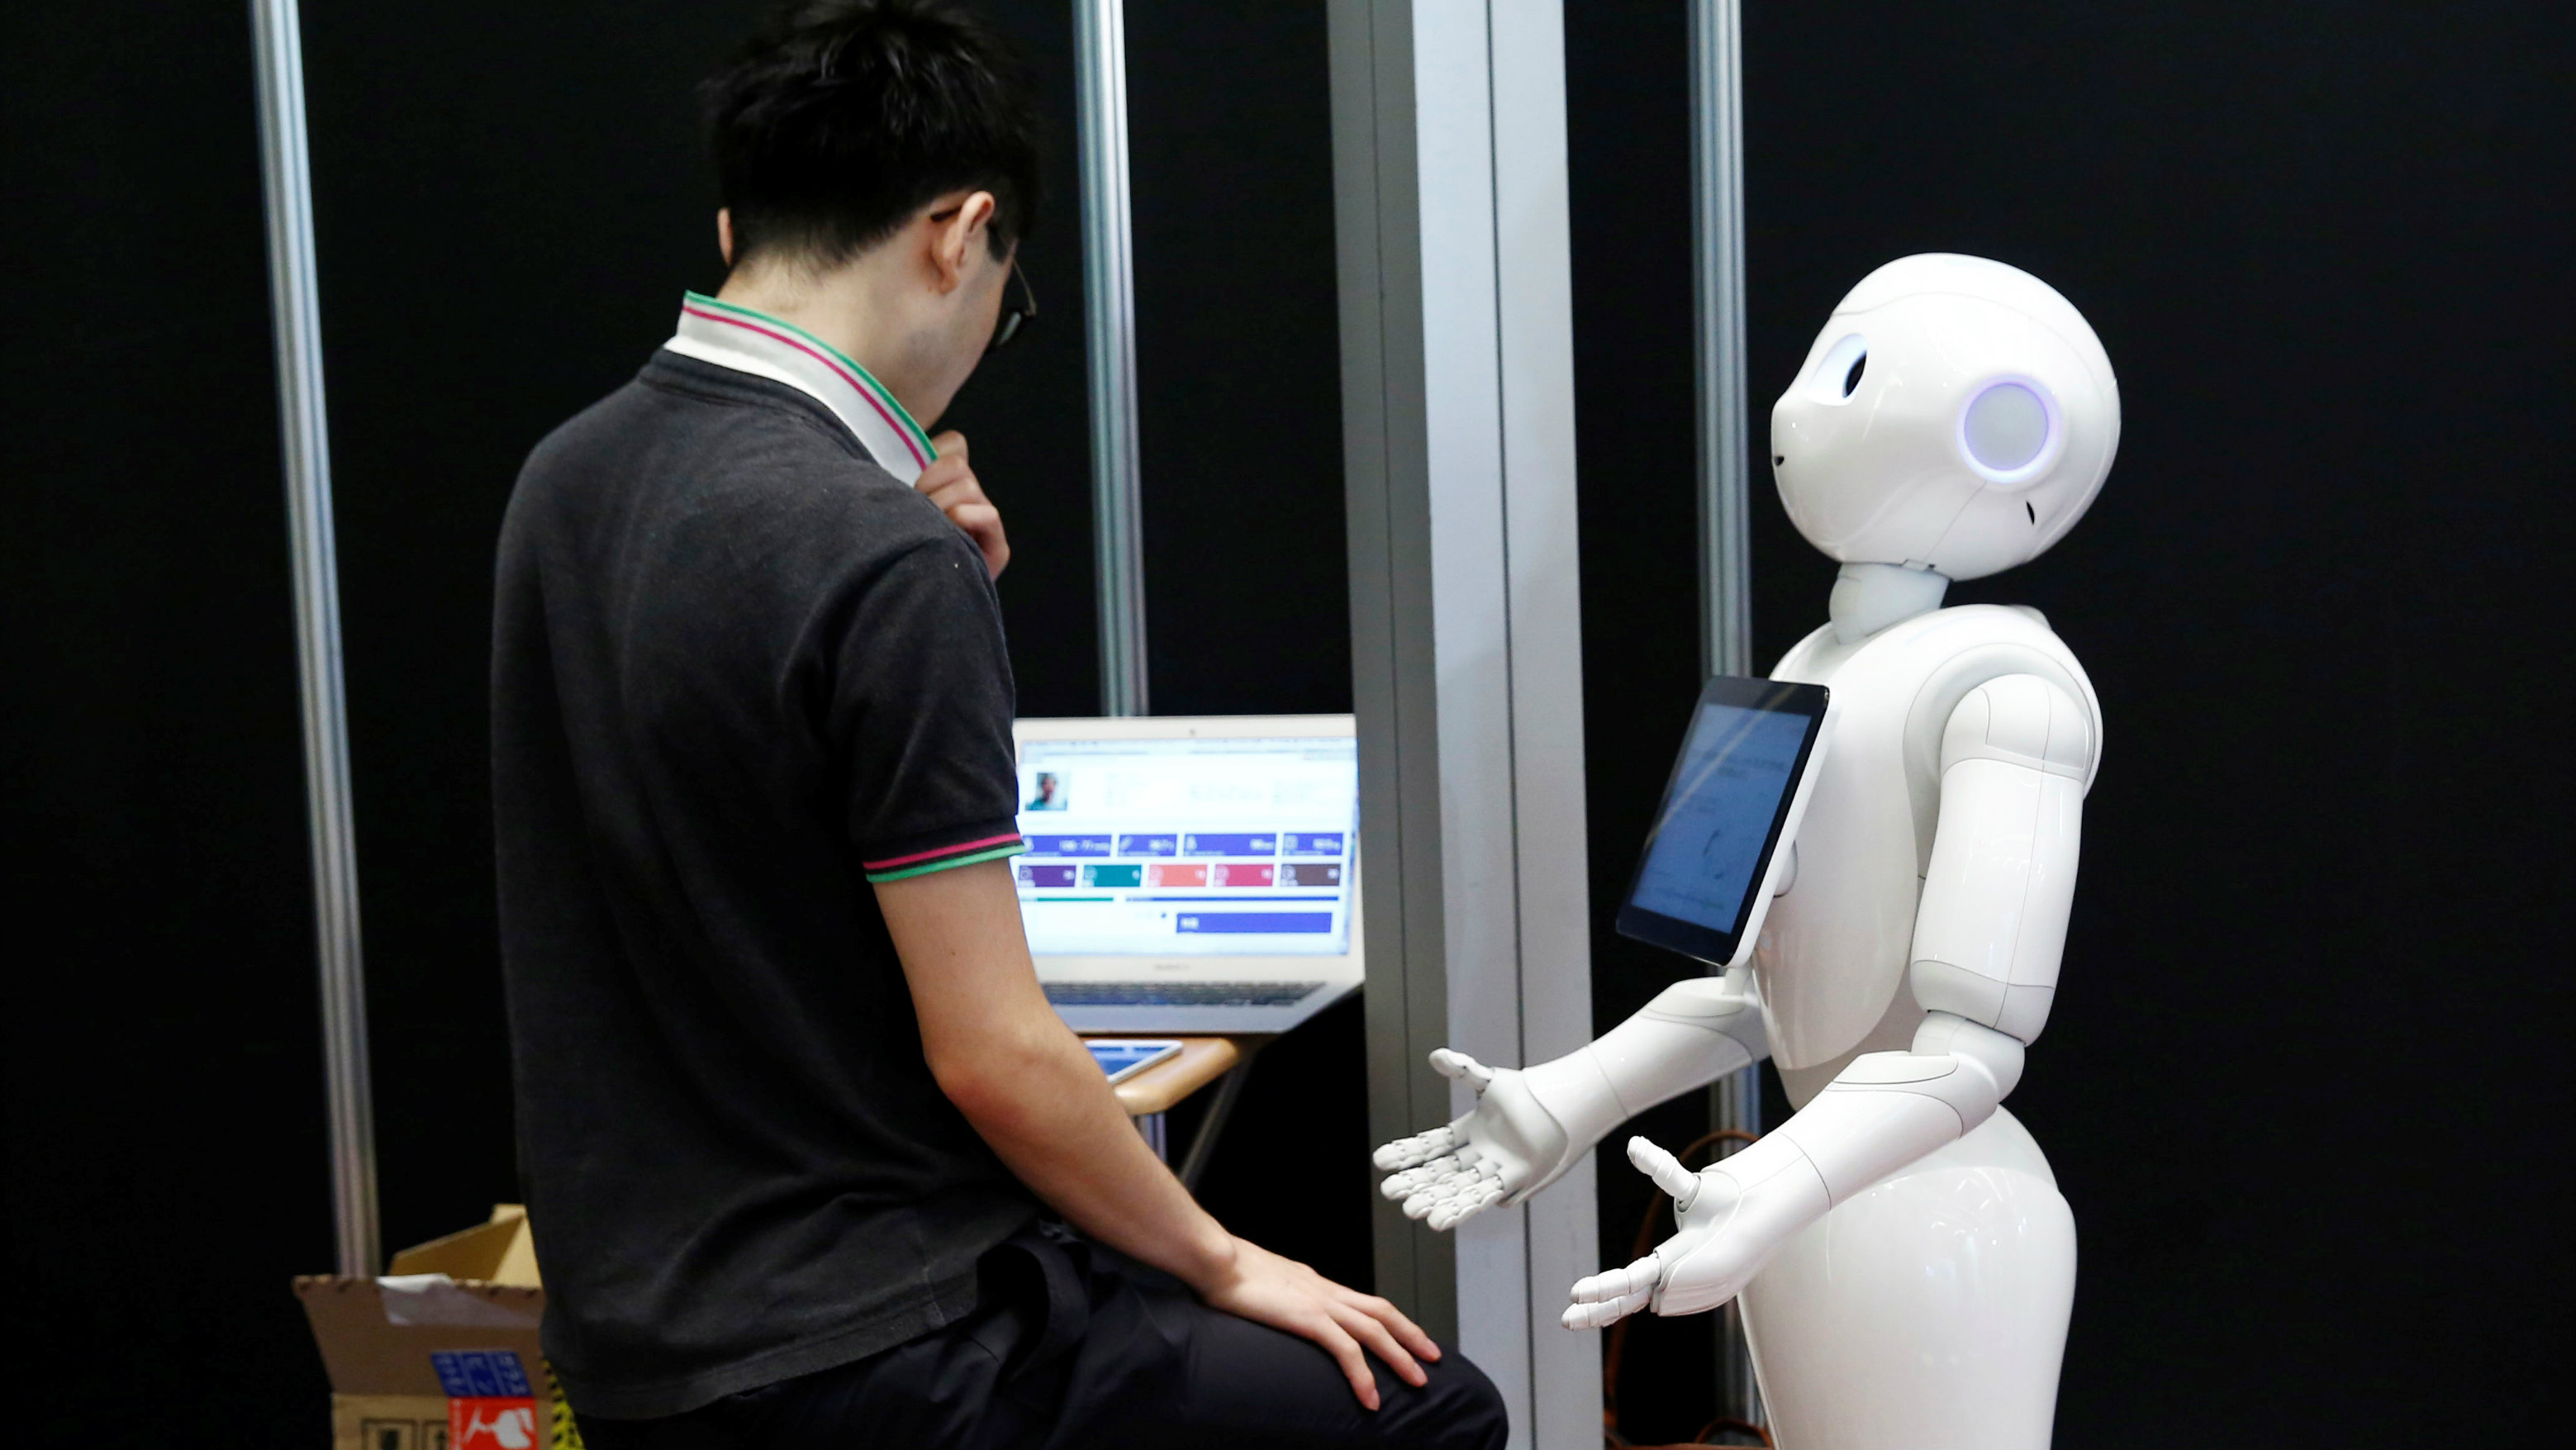 A man sets up a SoftBank humanoid robot known as Pepper as he prepares for Pepper World 2016 Summer, ahead of its opening on Thursday, in Tokyo, Japan, July 20, 2016.